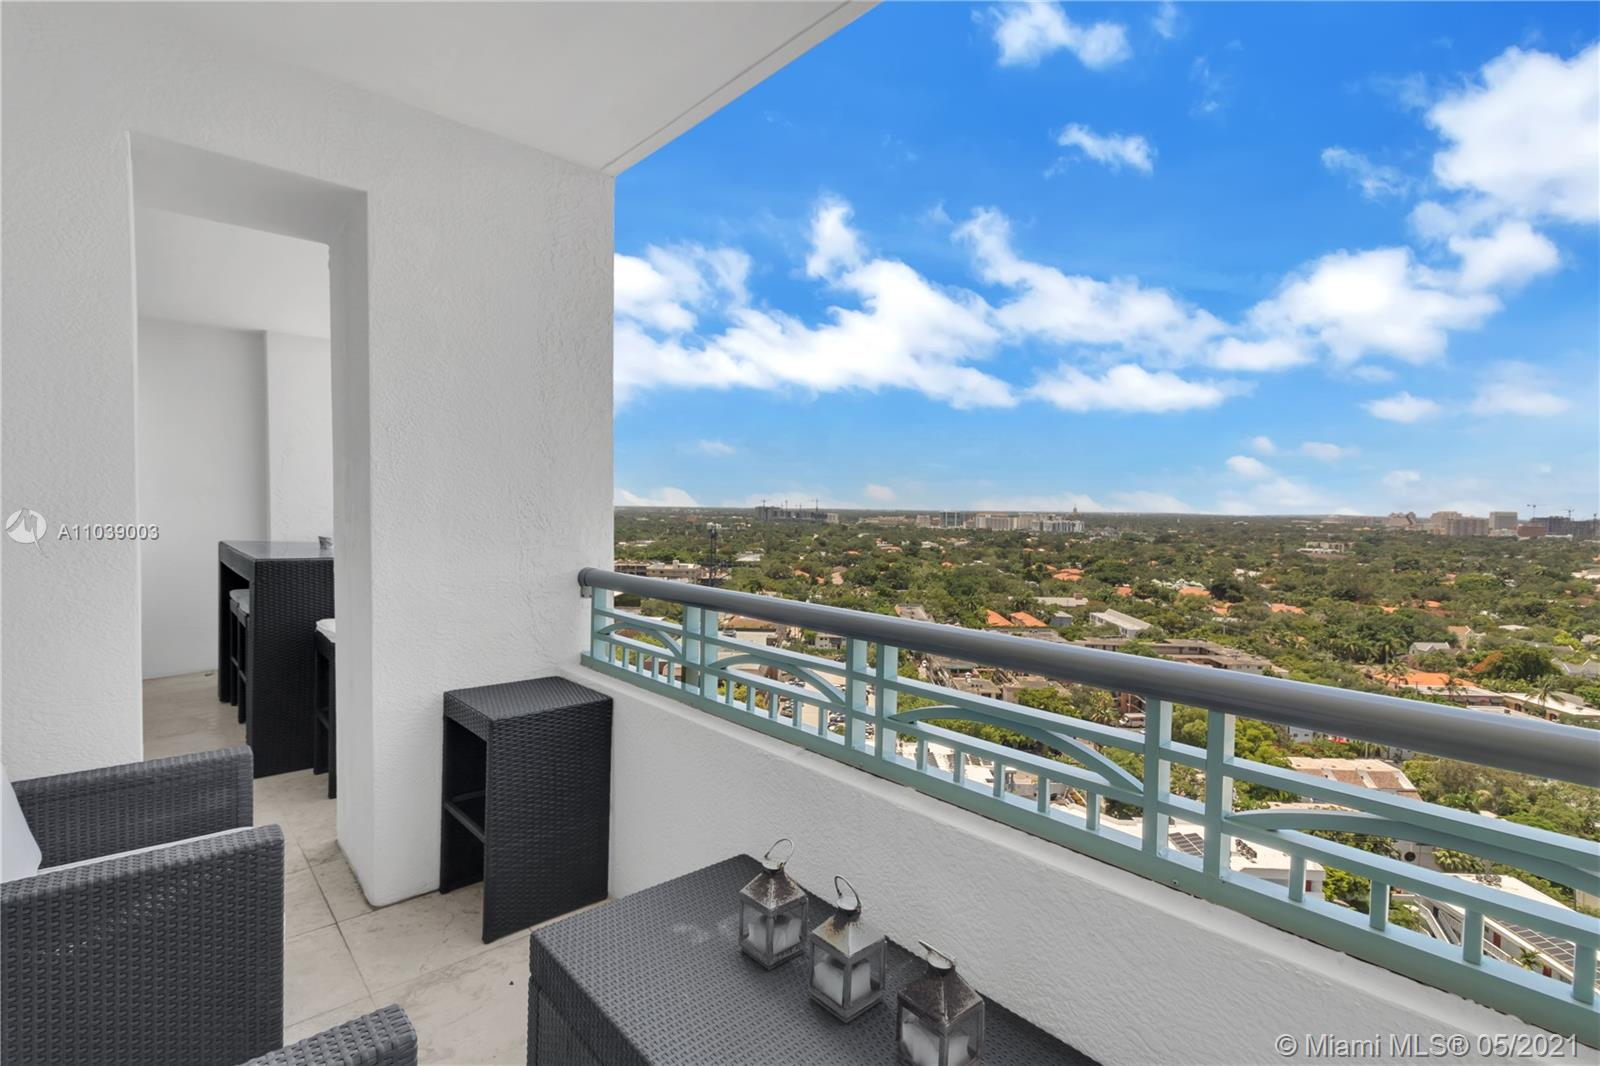 This spacious fully furnished 1 Bed, 1.5 Bath is located on the 19th floor in the ultra-luxury Ritz-Carlton Coconut Grove. This unit features granite countertops, stainless steel appliances, custom closets, and a bright open floor plan. The modern kitchen with a breakfast counter overlooks spectacular views of Coral Gables.   Step outside to your large balcony with designer furnishings that provides indoor-outdoor access and light throughout the unit. The spa-like master bathroom includes a frameless glass shower and top-of-the-line finishes. Property amenities include fingerprint entry, 24-hour concierge, private pool, fitness center, in-room dining, 3 world-class restaurants, and The Ritz-Carlton Spa on site.